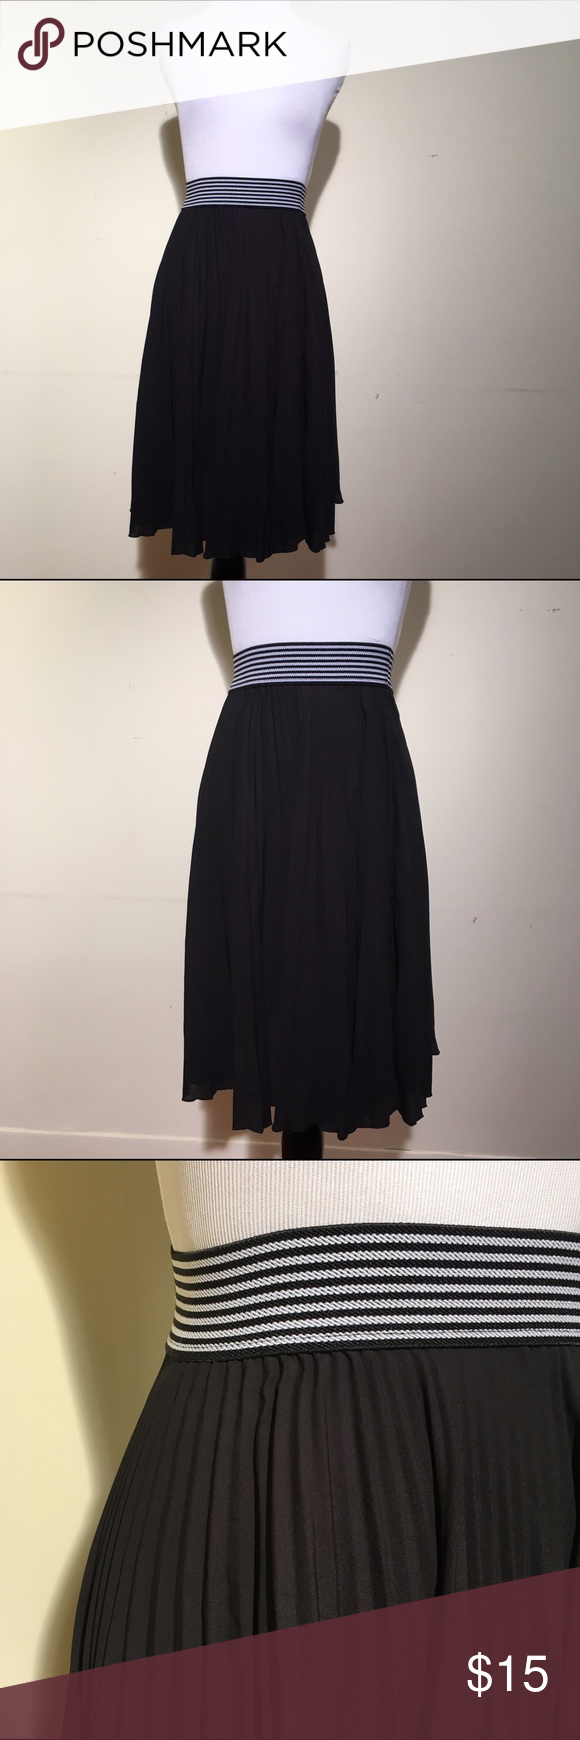 """Forever 21 black skirt. A must have staple in your closet. Striped waist band that is 20"""" total ~ very stretchable. The length is 24""""   The skirt has a slight pleated look. Forever 21 Skirts Midi"""